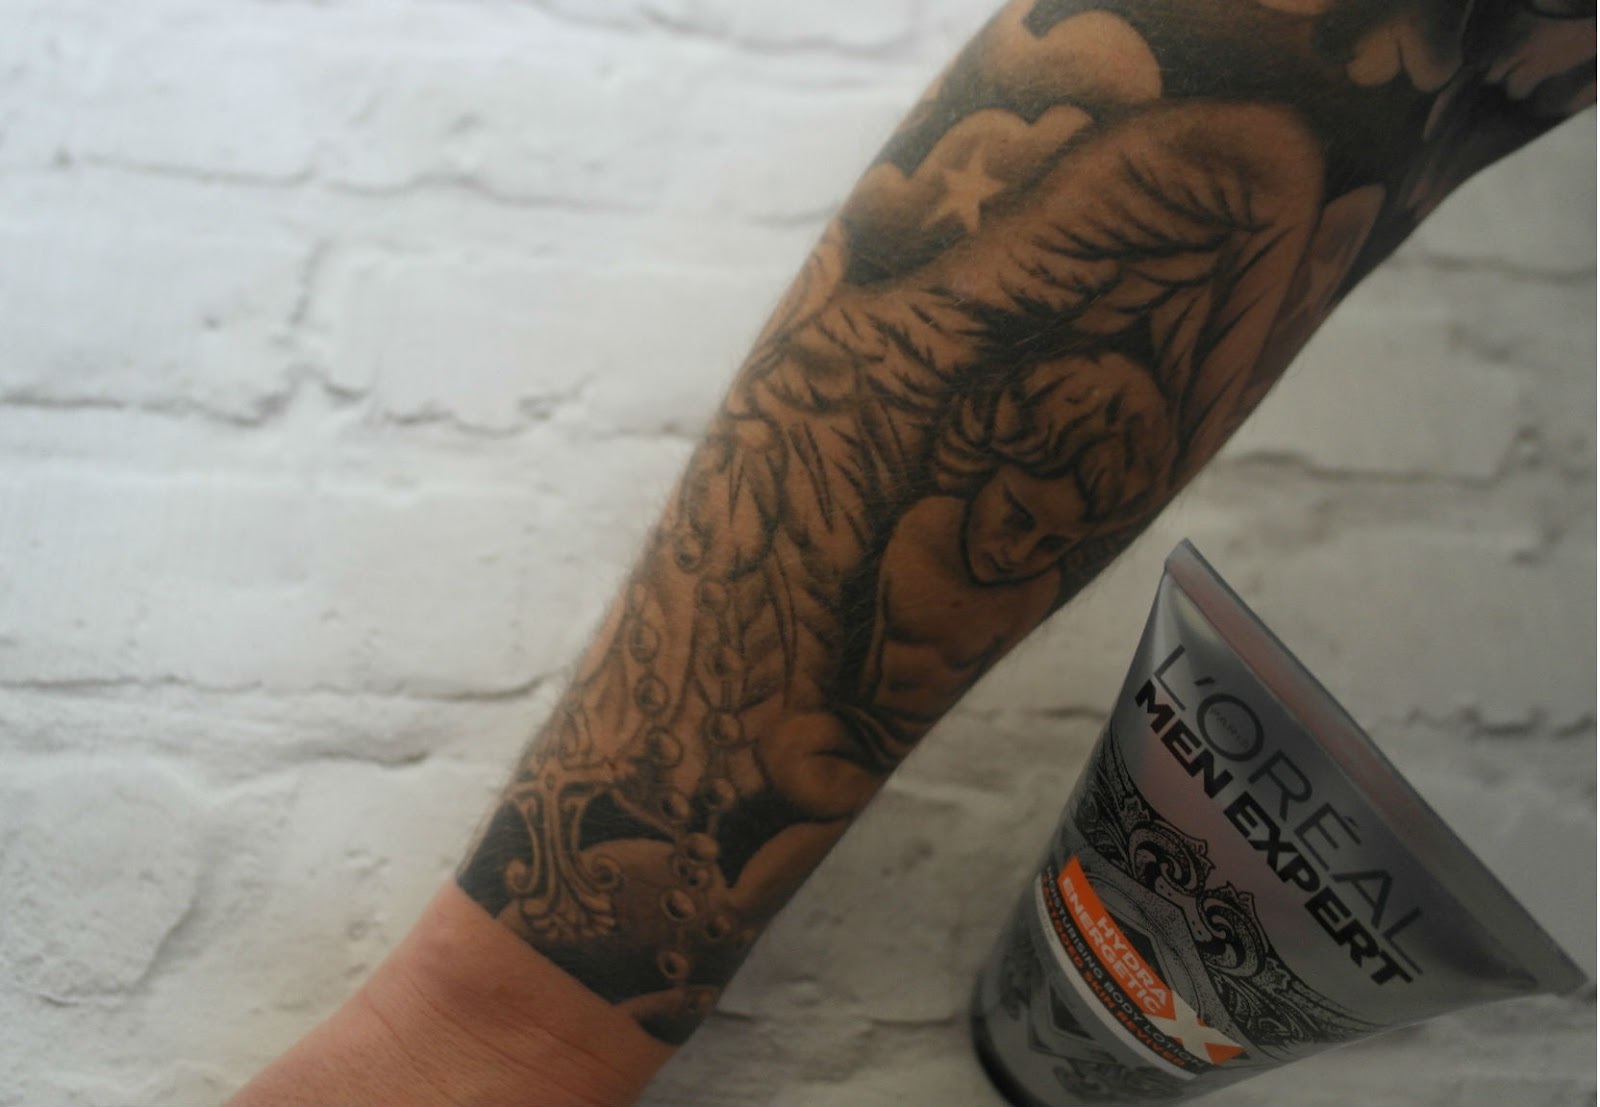 L'oreal Men Expert Hydra Energetic Tattooed Skin Reviver Lotion